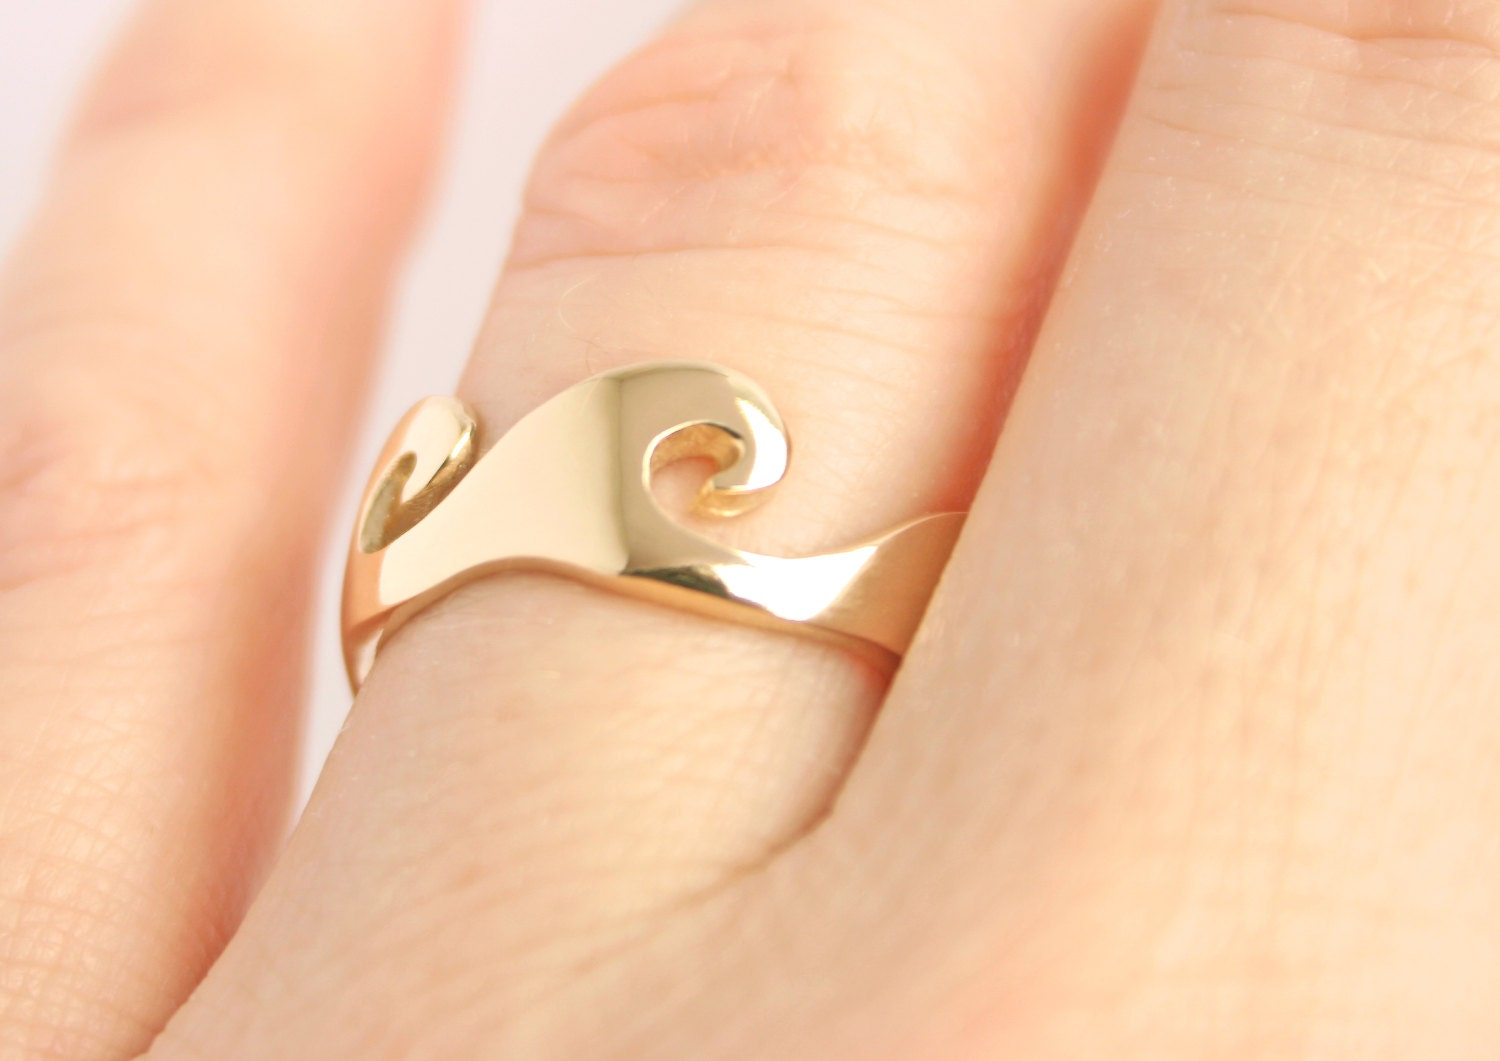 wave wedding band alternative wedding bands Wave Ring Ocean Wave Ring Alternative Wedding Ring Alternative Wedding Band Wave Trending Jewelry Gold Wave Ring His Hers unique Wedding